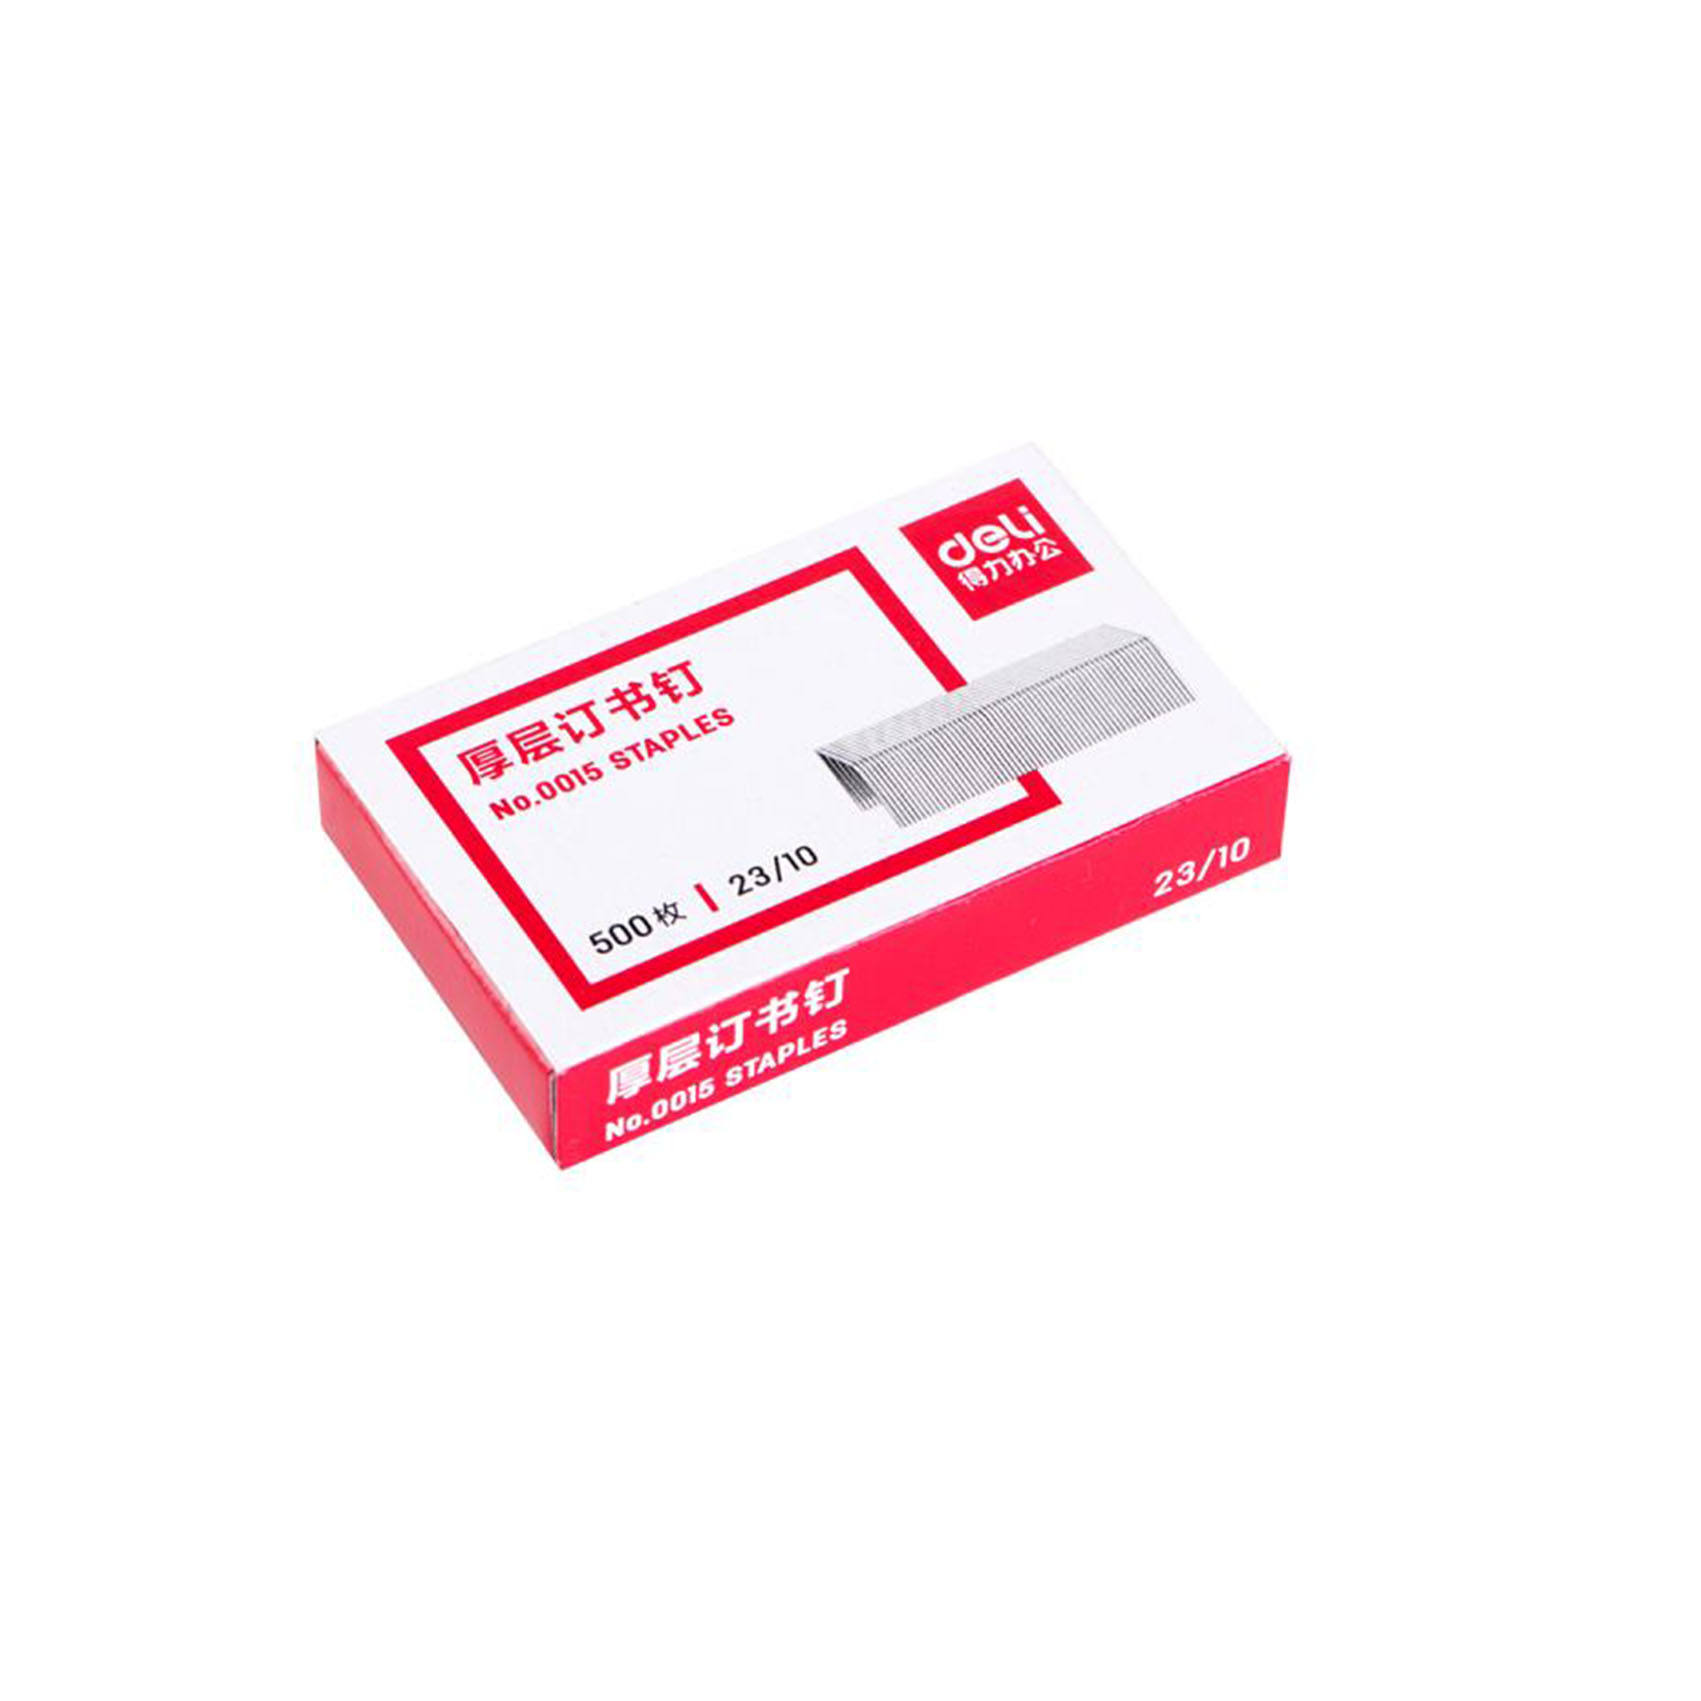 High Performance Staples Pin for Office Supply Silver Metal 23/10 23/13 Paper Staples